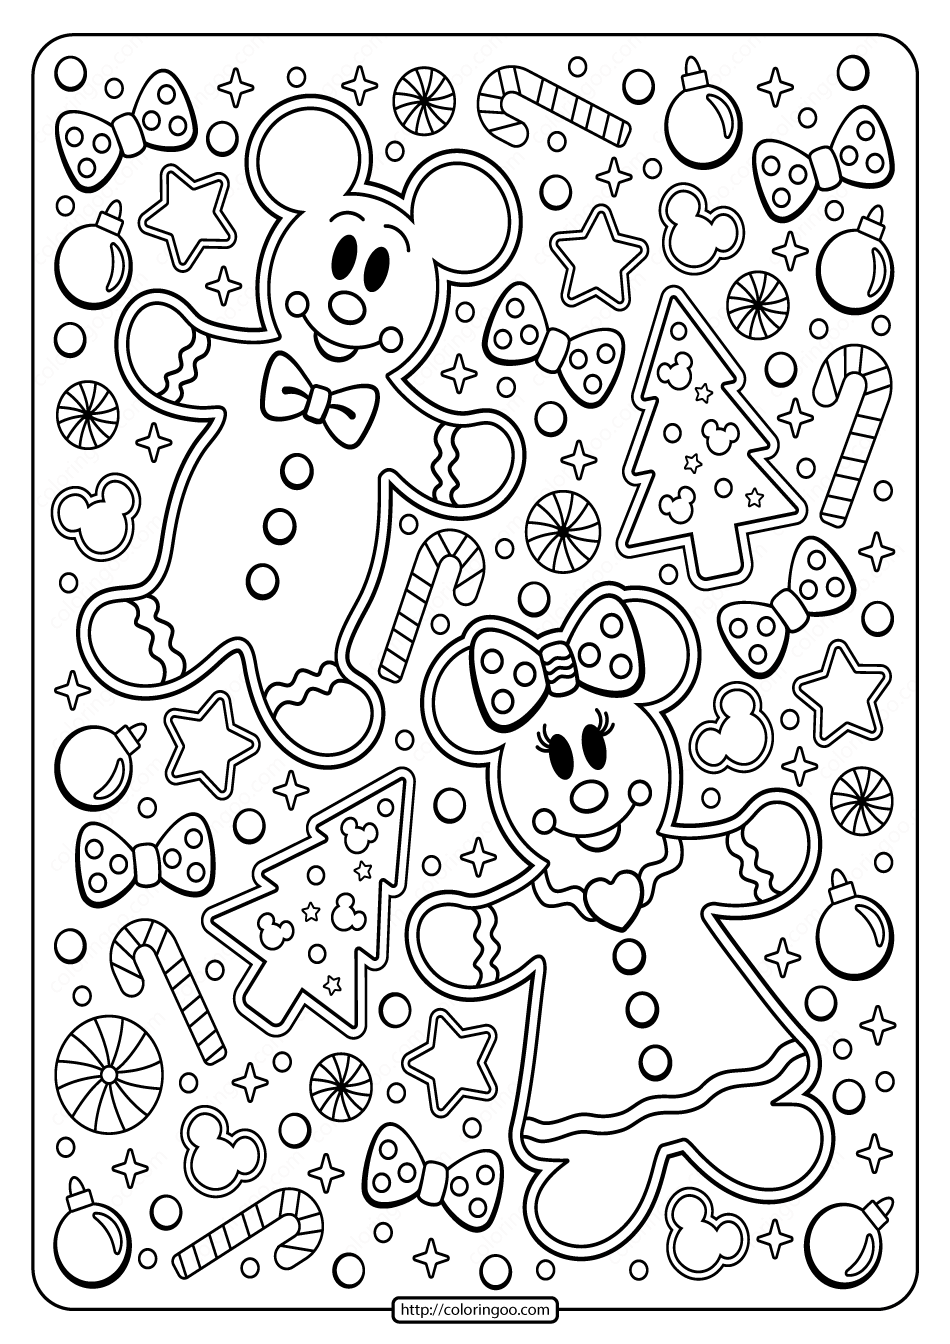 goofy christmas coloring pages mickey minnie mouse holiday coloring page in 2020 coloring goofy christmas pages